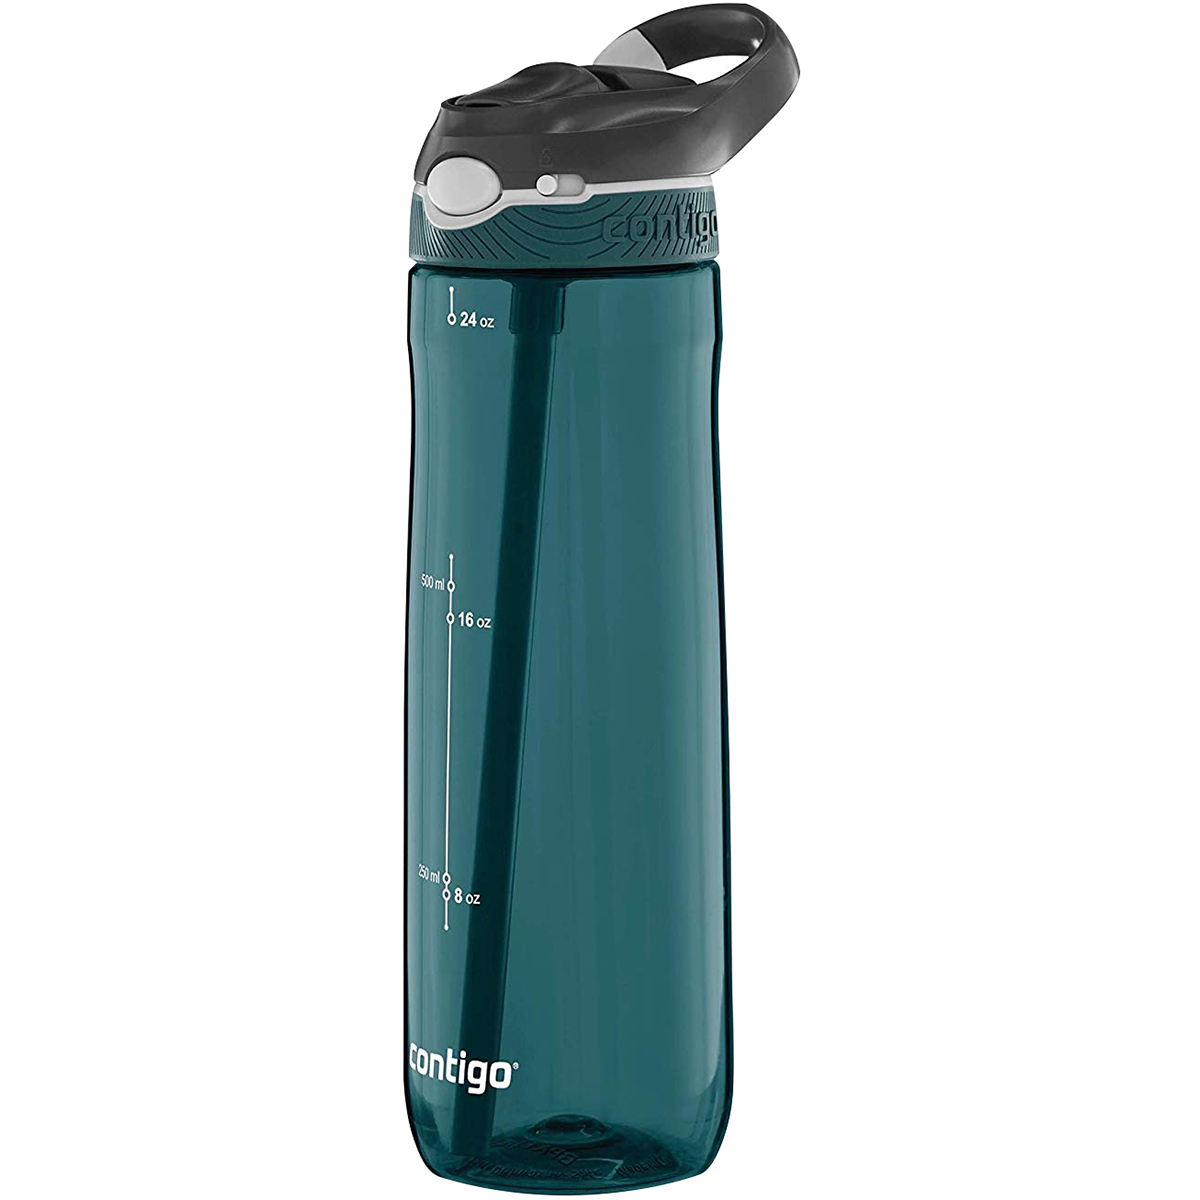 Contigo-24-oz-Ashland-Autospout-Water-Bottle miniature 3